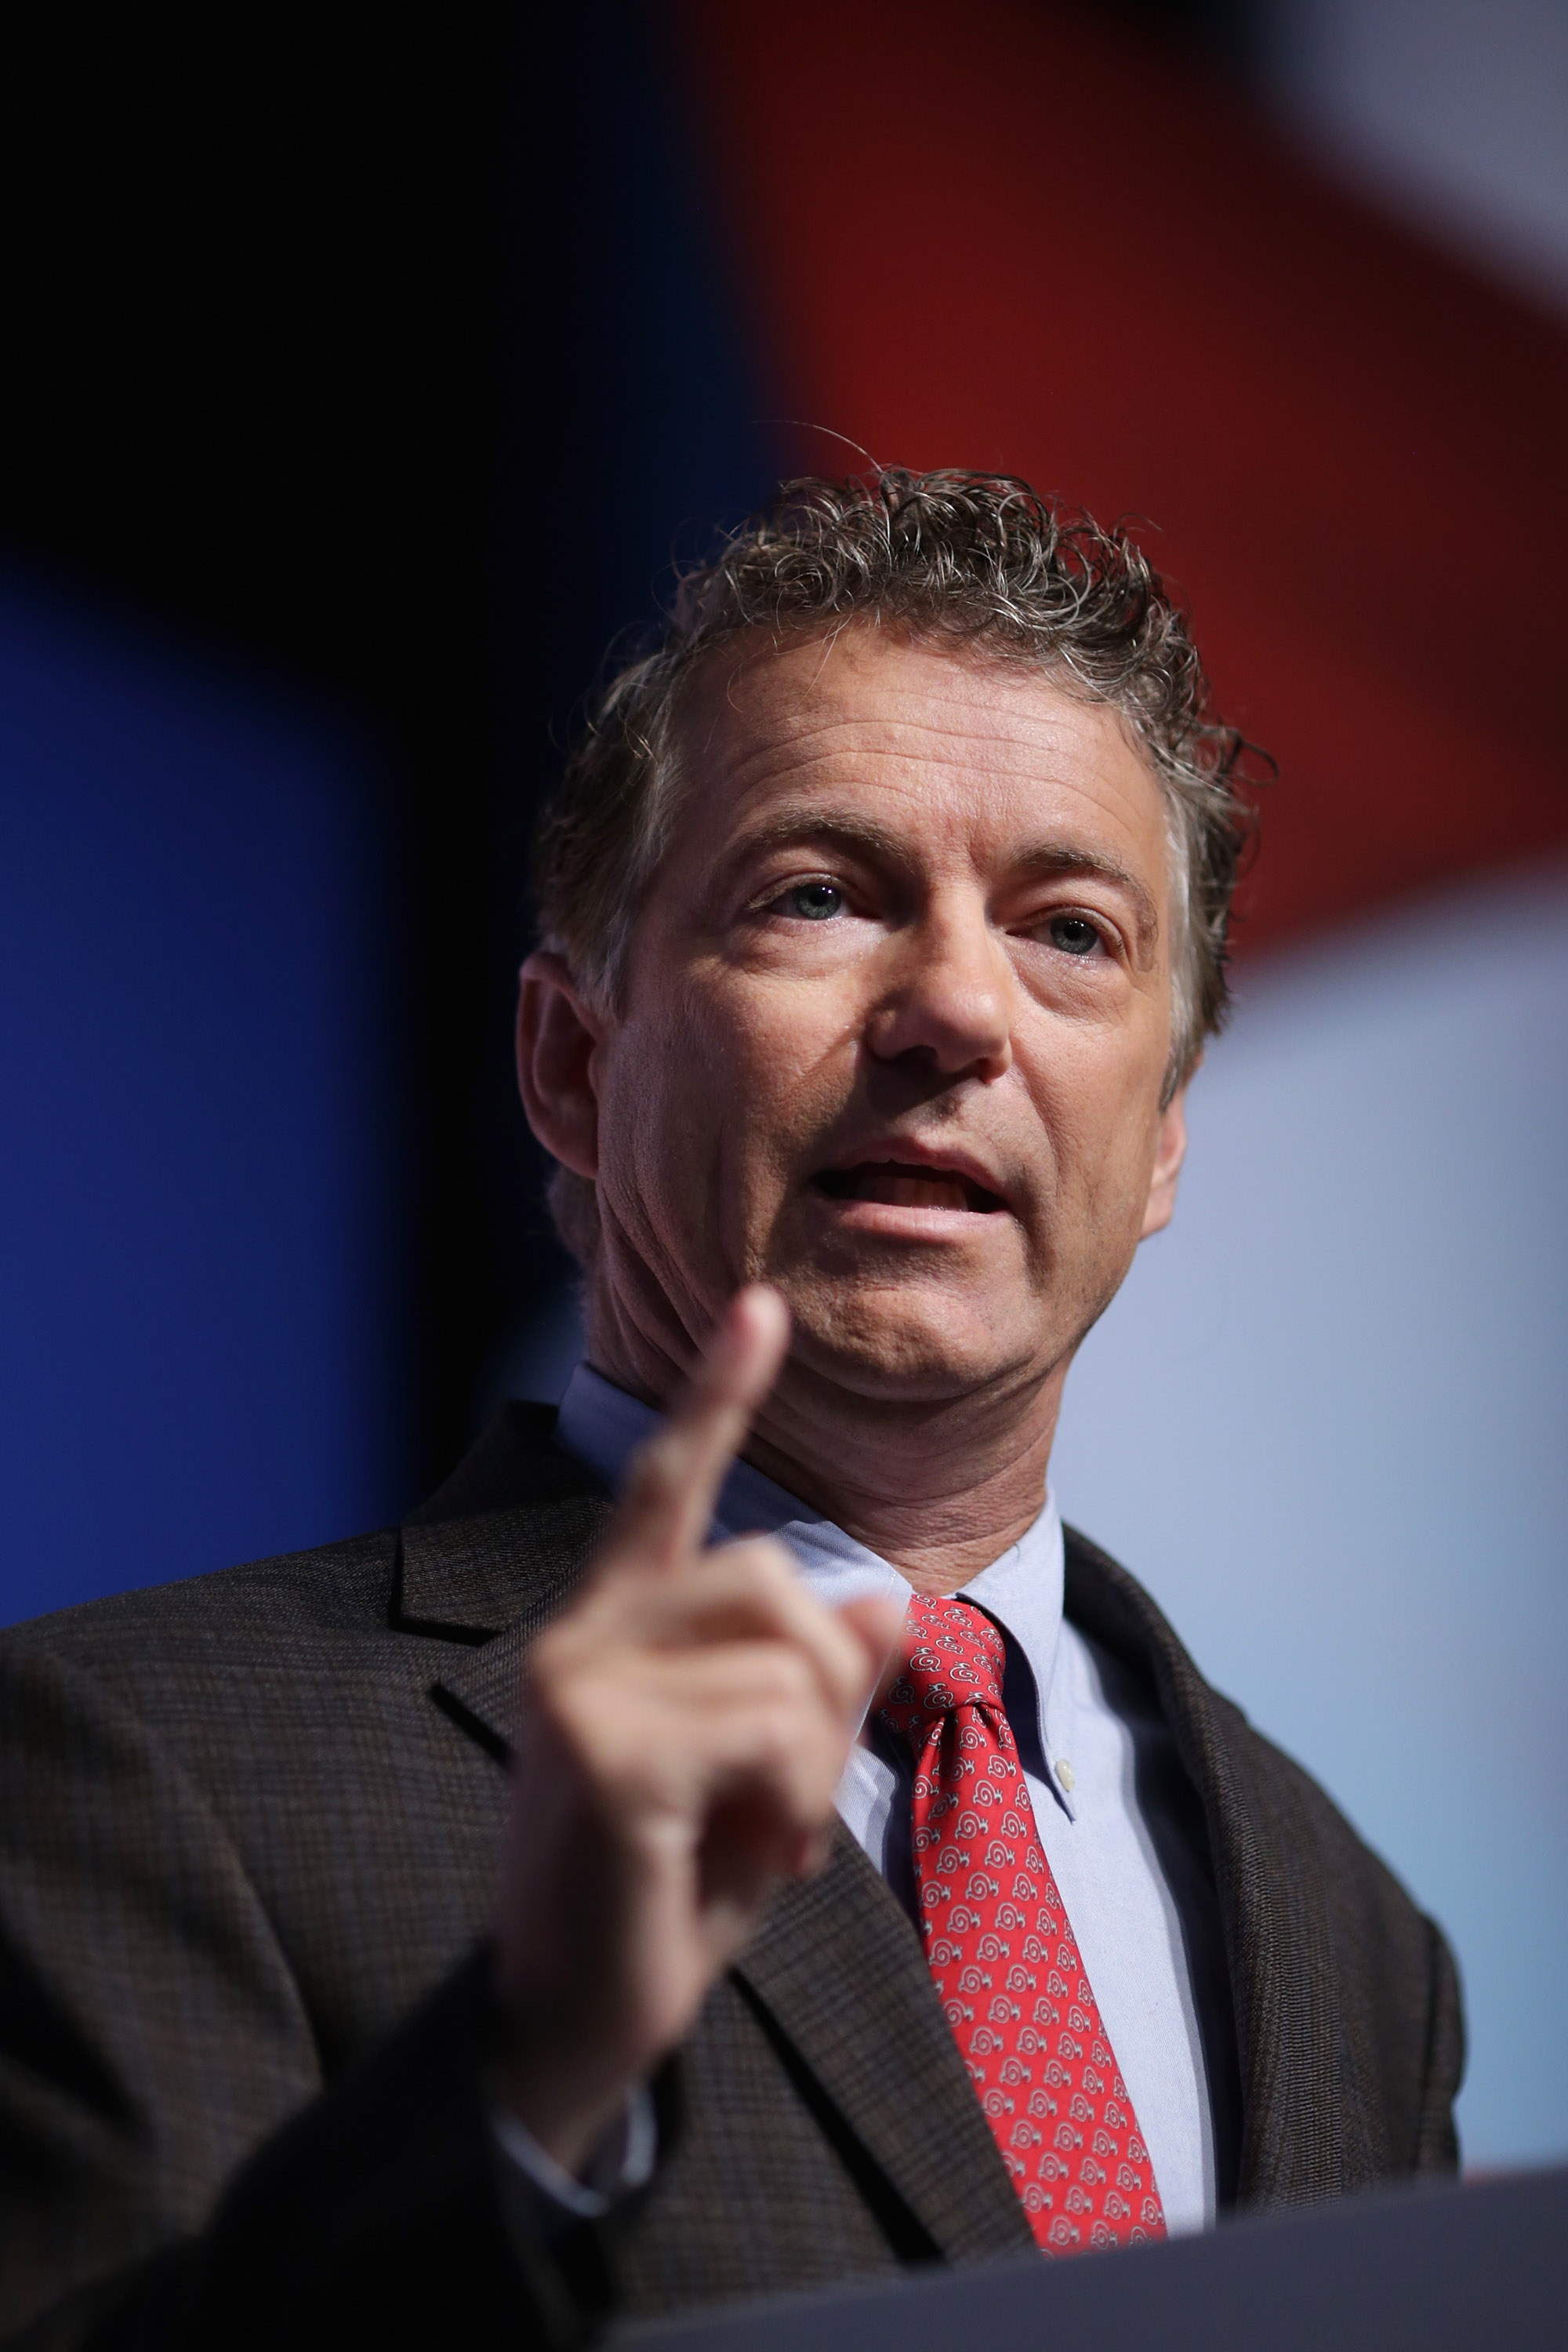 Rand Paul is one of the keynote speakers at the 2014 LincolnLabs Reboot conference in San Francisco this weekend. (Chip Somodevilla/Getty Images)